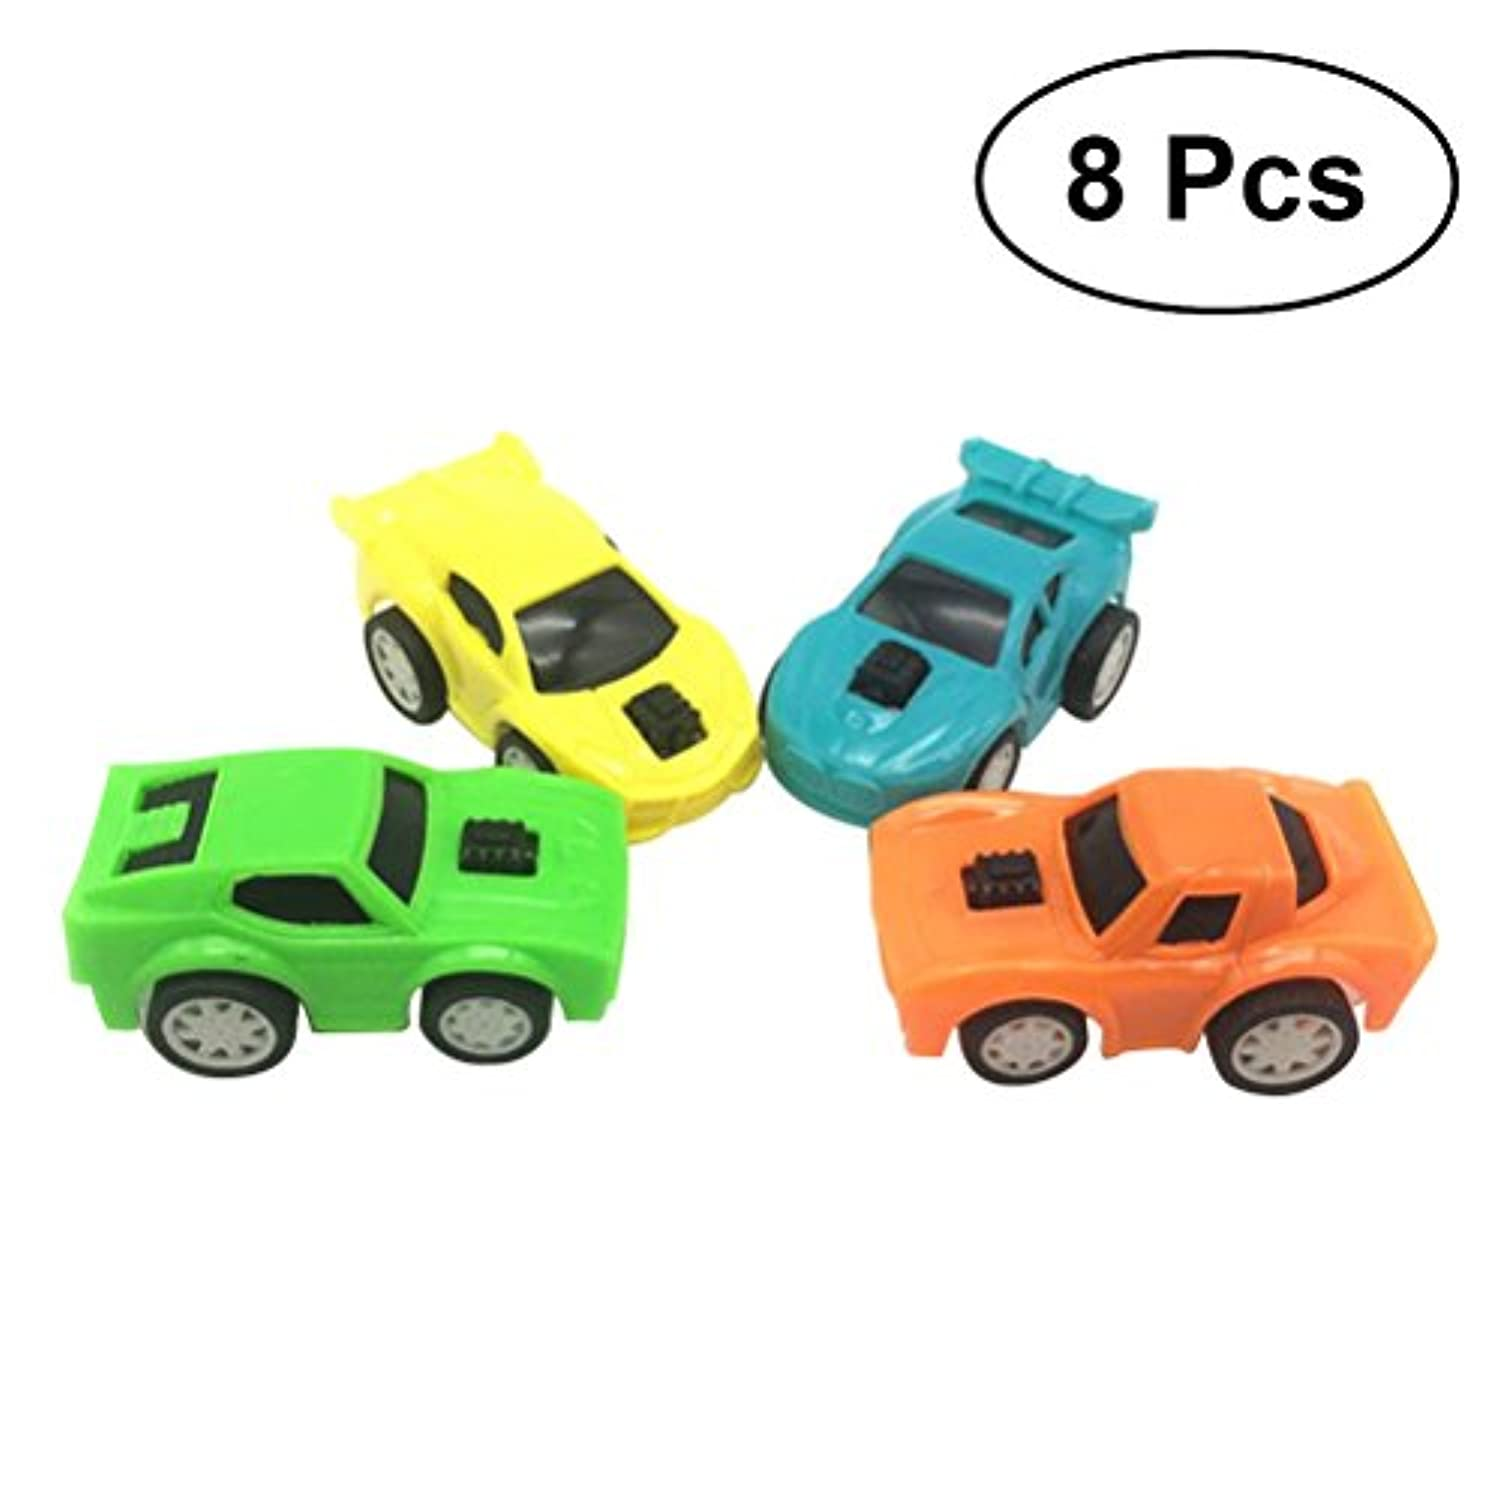 toymytoy Pull Back Vehicles Toy Friction Powered Toy Cars Push and Go Pull Back Cars 8pcs